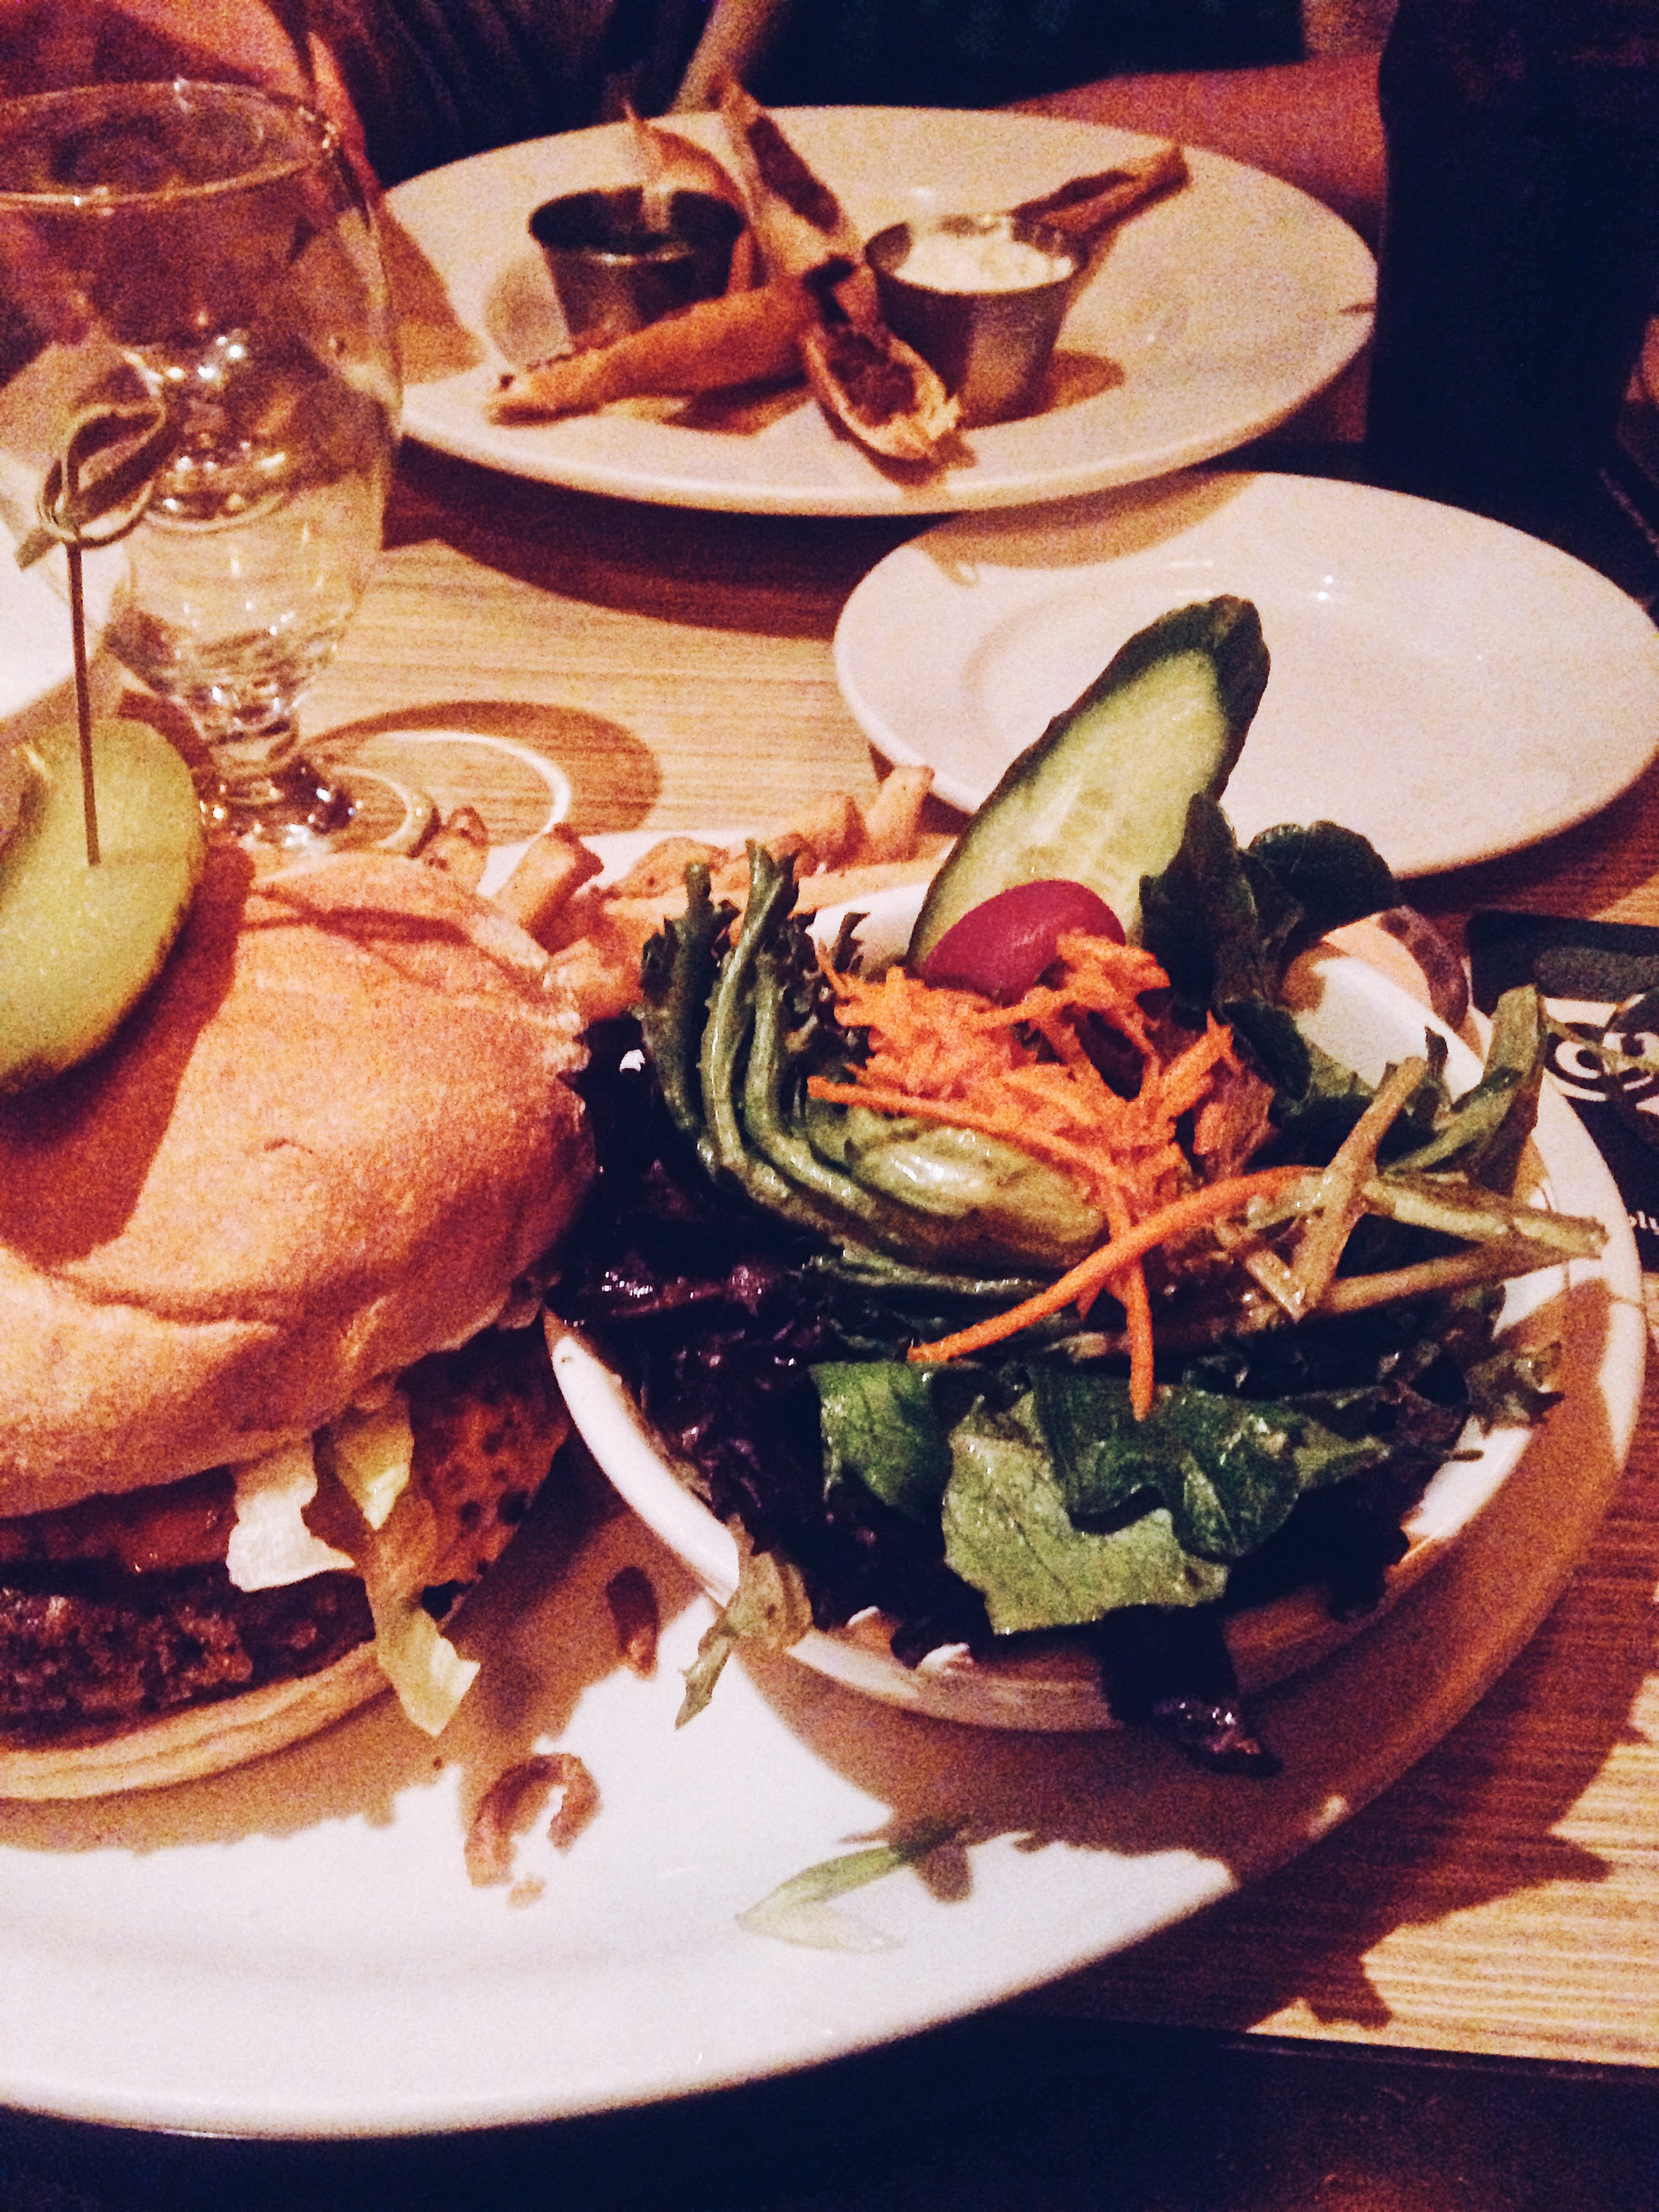 Veggie burgers at Biercraft. Restaurant review. Vancouver. Canada